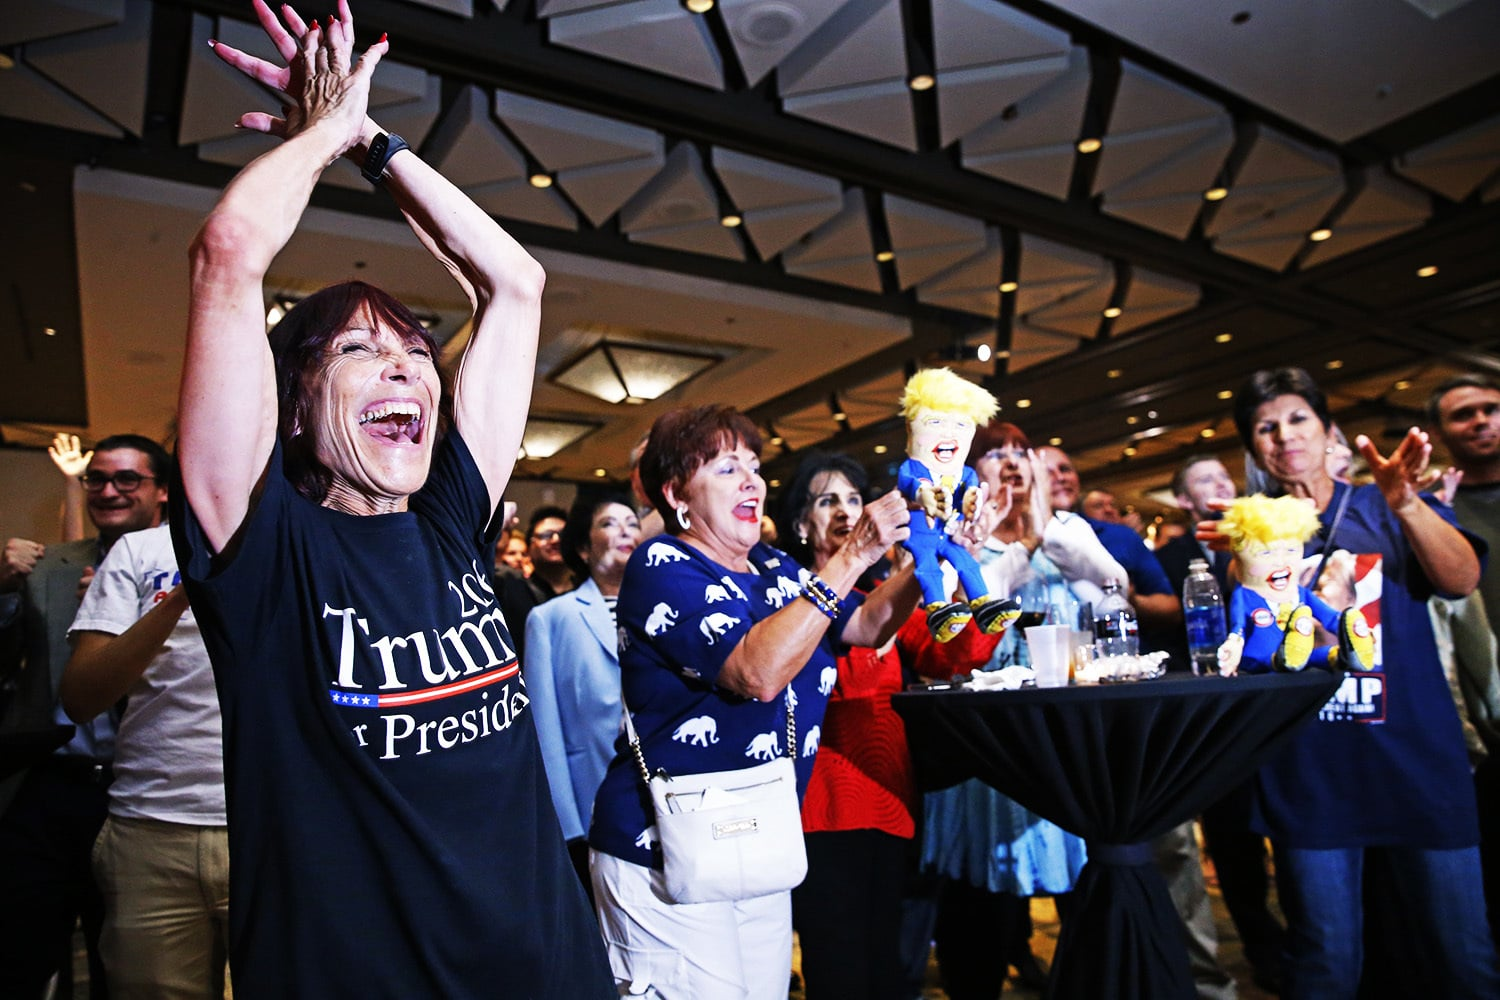 Supporters for Republican presidential candidate Donald Trump react as early results come in.— AP